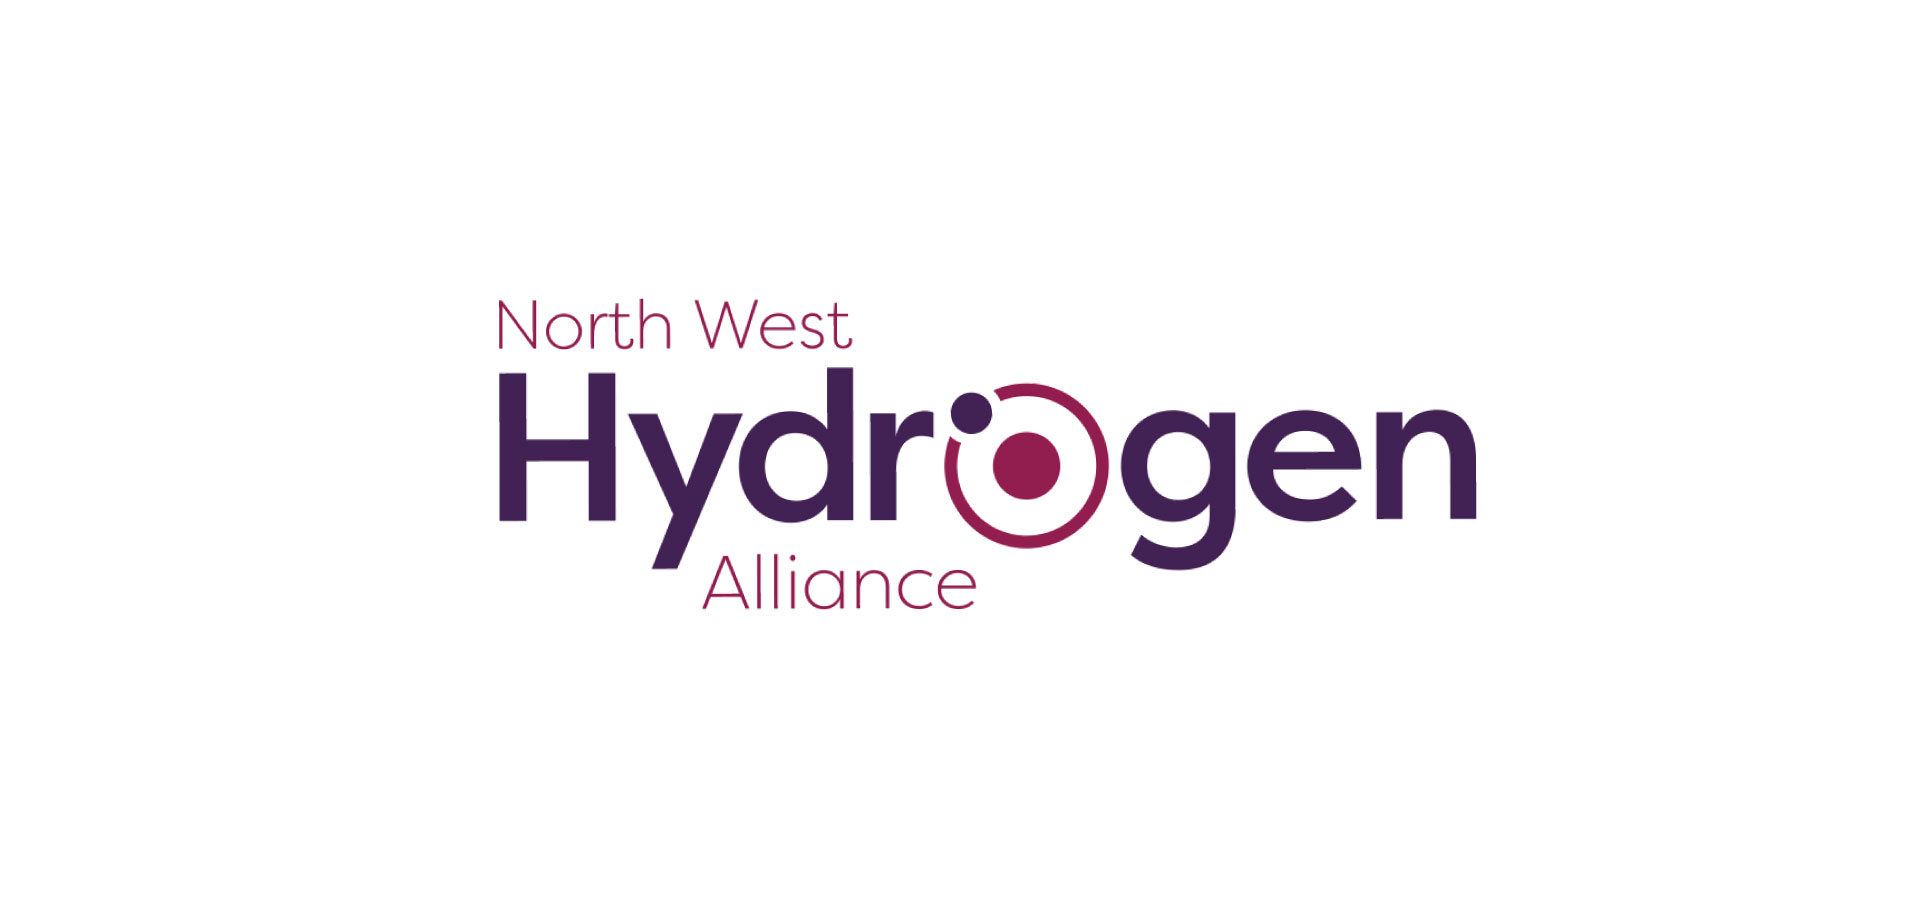 UK's hydrogen strategy expected to be published in July